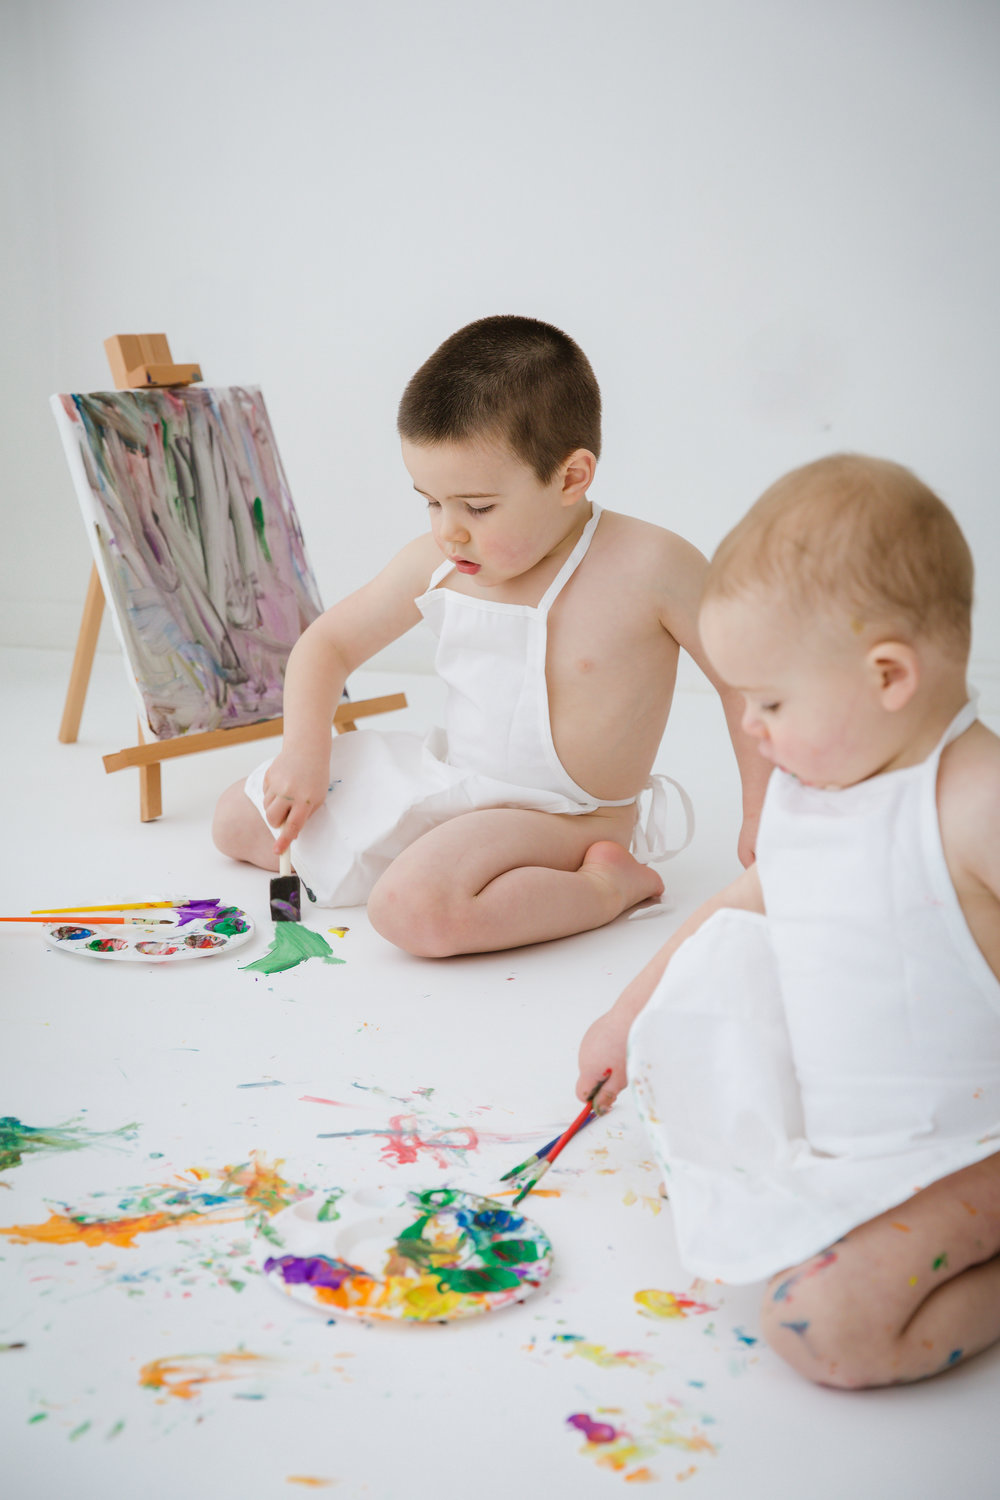 baby-boys-painting-in-burlington-new-jersey-photo-studio